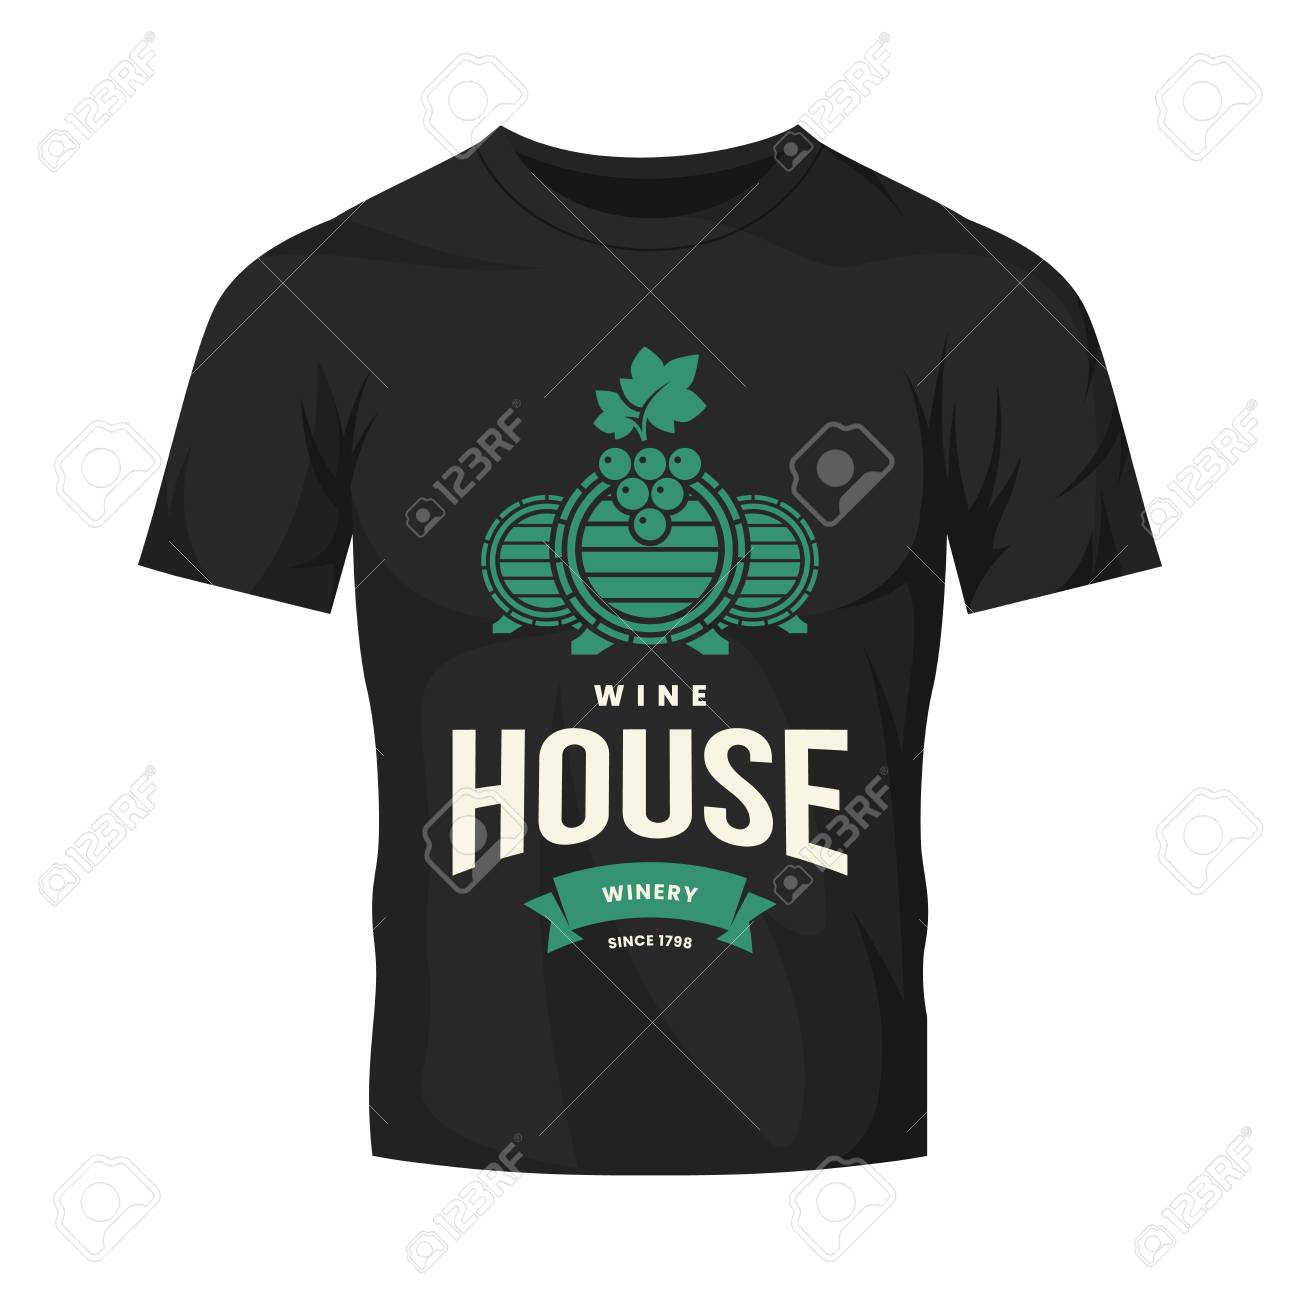 Modern wine vector logo sign for tavern, restaurant, house, shop, store, club and cellar isolated on black t-shirt mock up. Premium quality vinery logotype illustration. Fashion badge design template. - 126498880